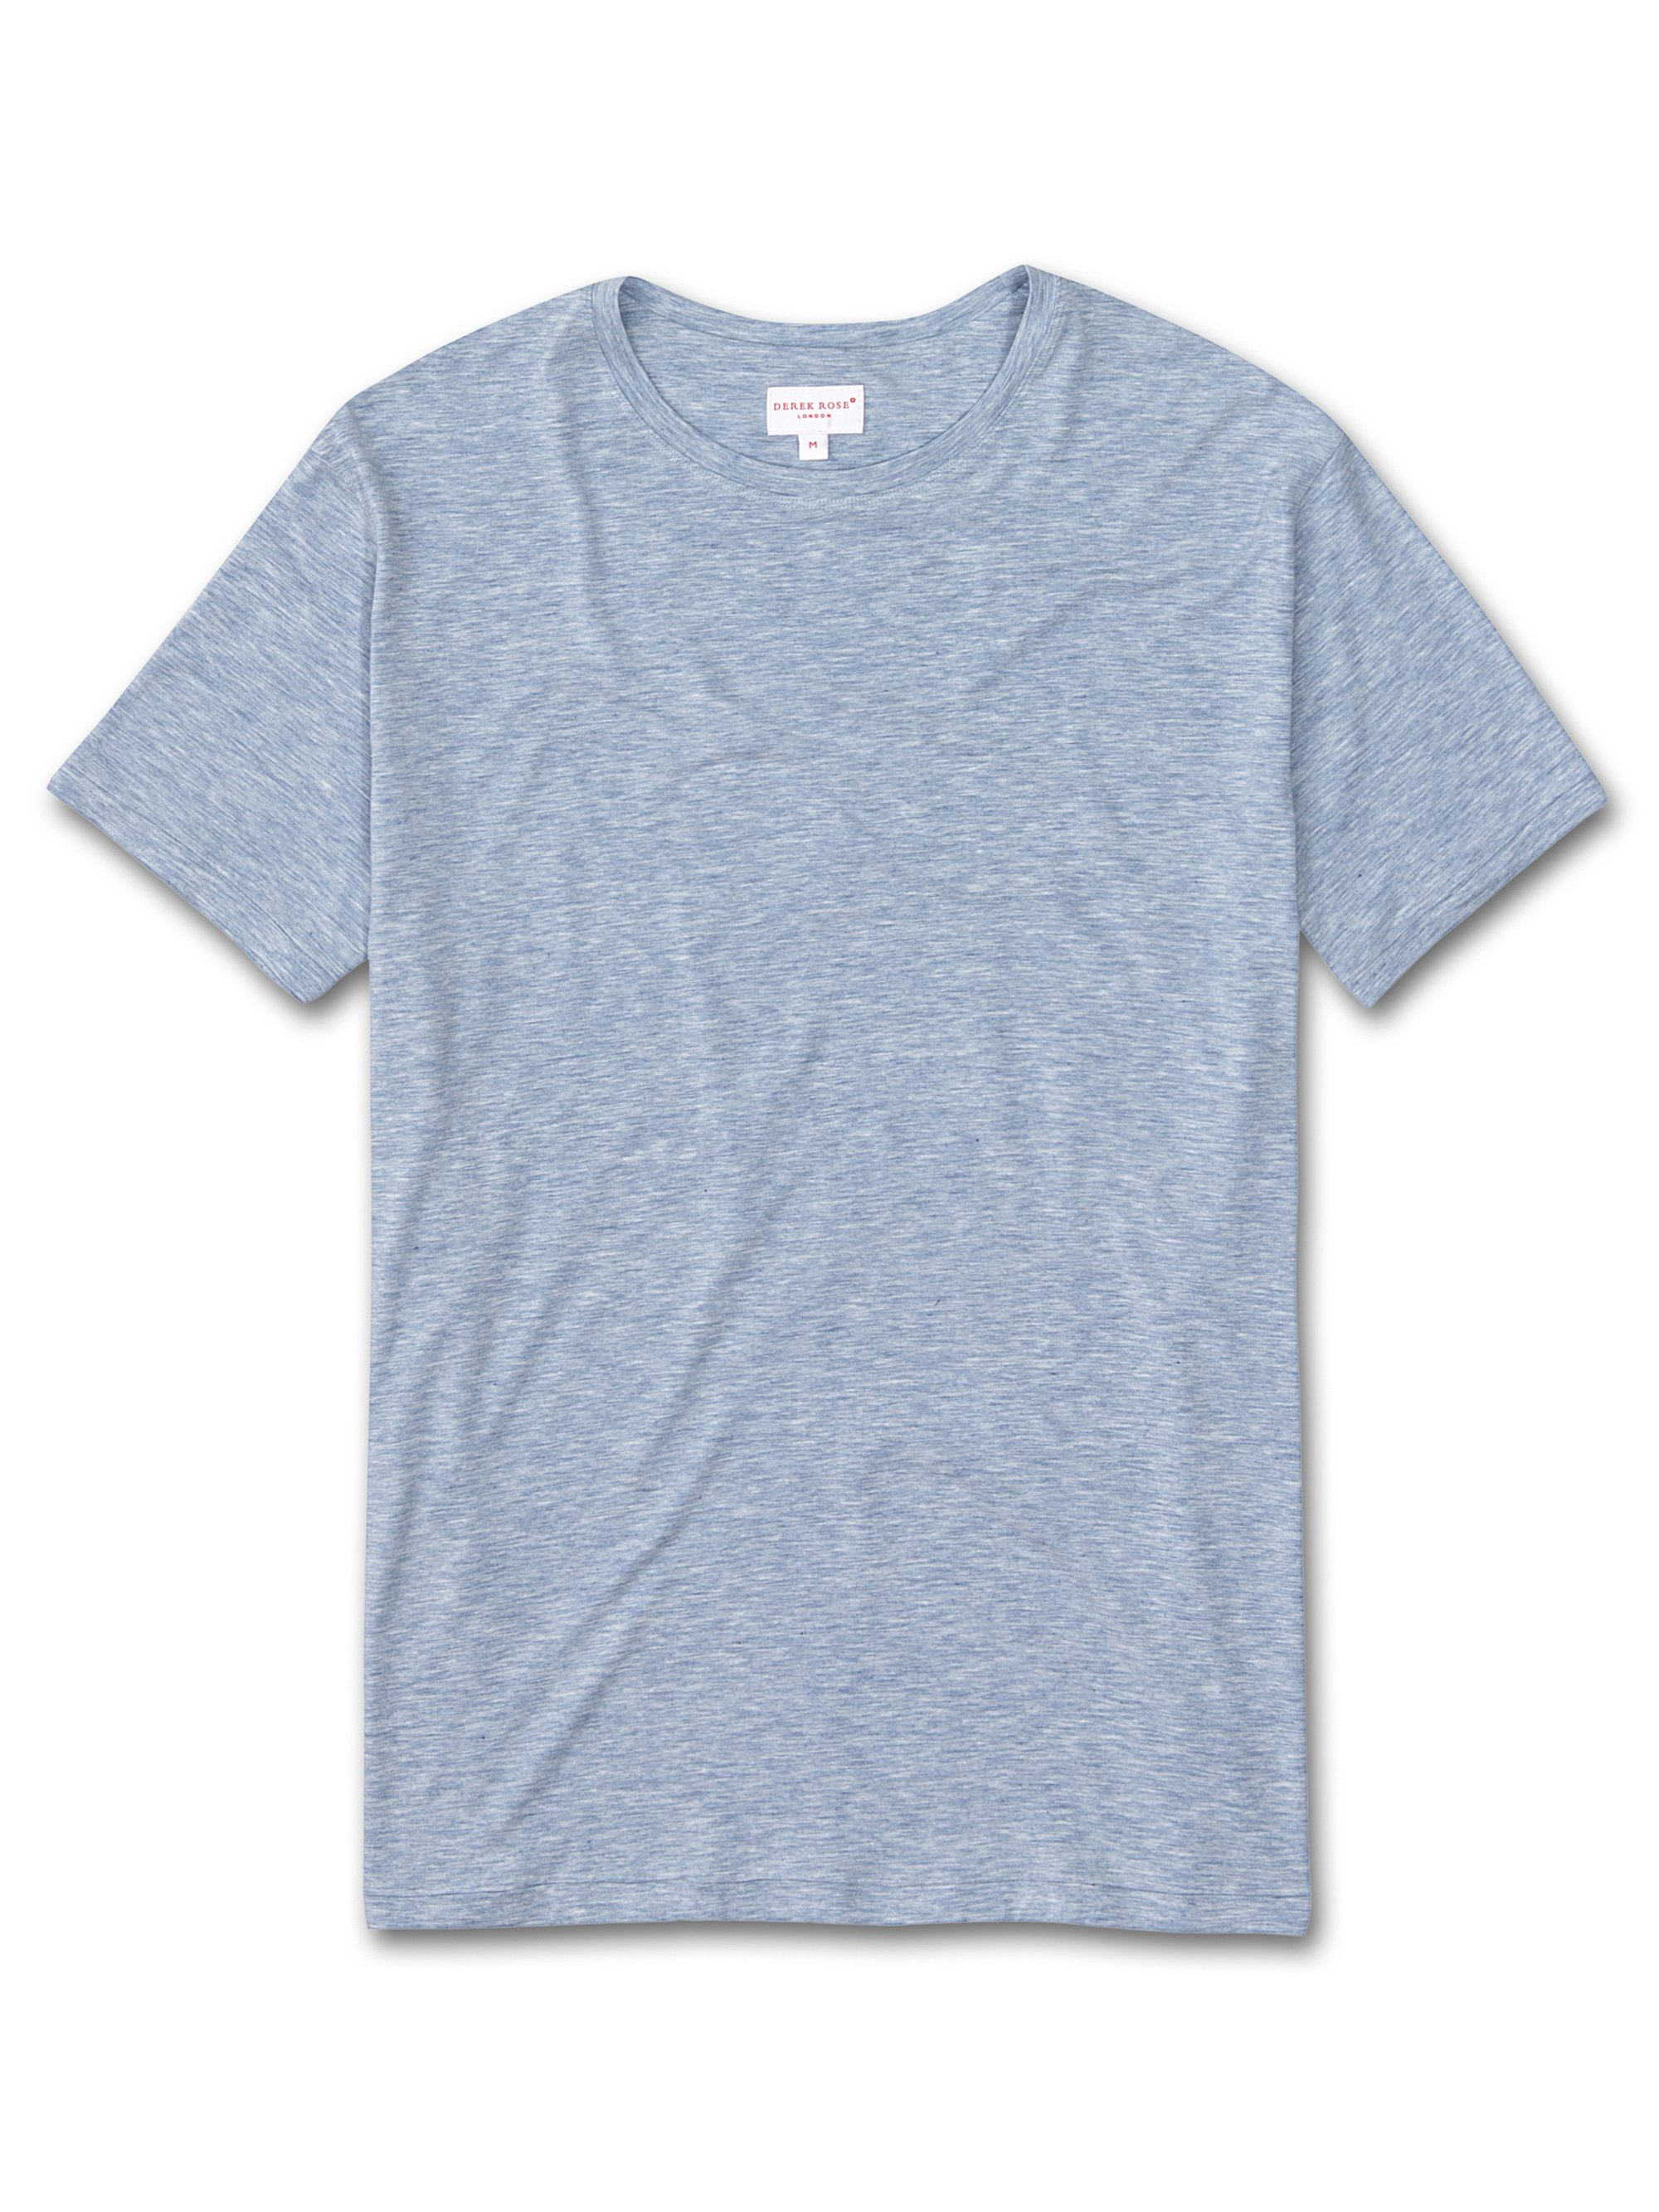 Derek Rose Men's Short Sleeve T-Shirt — Ethan Micro Modal Stretch Blue